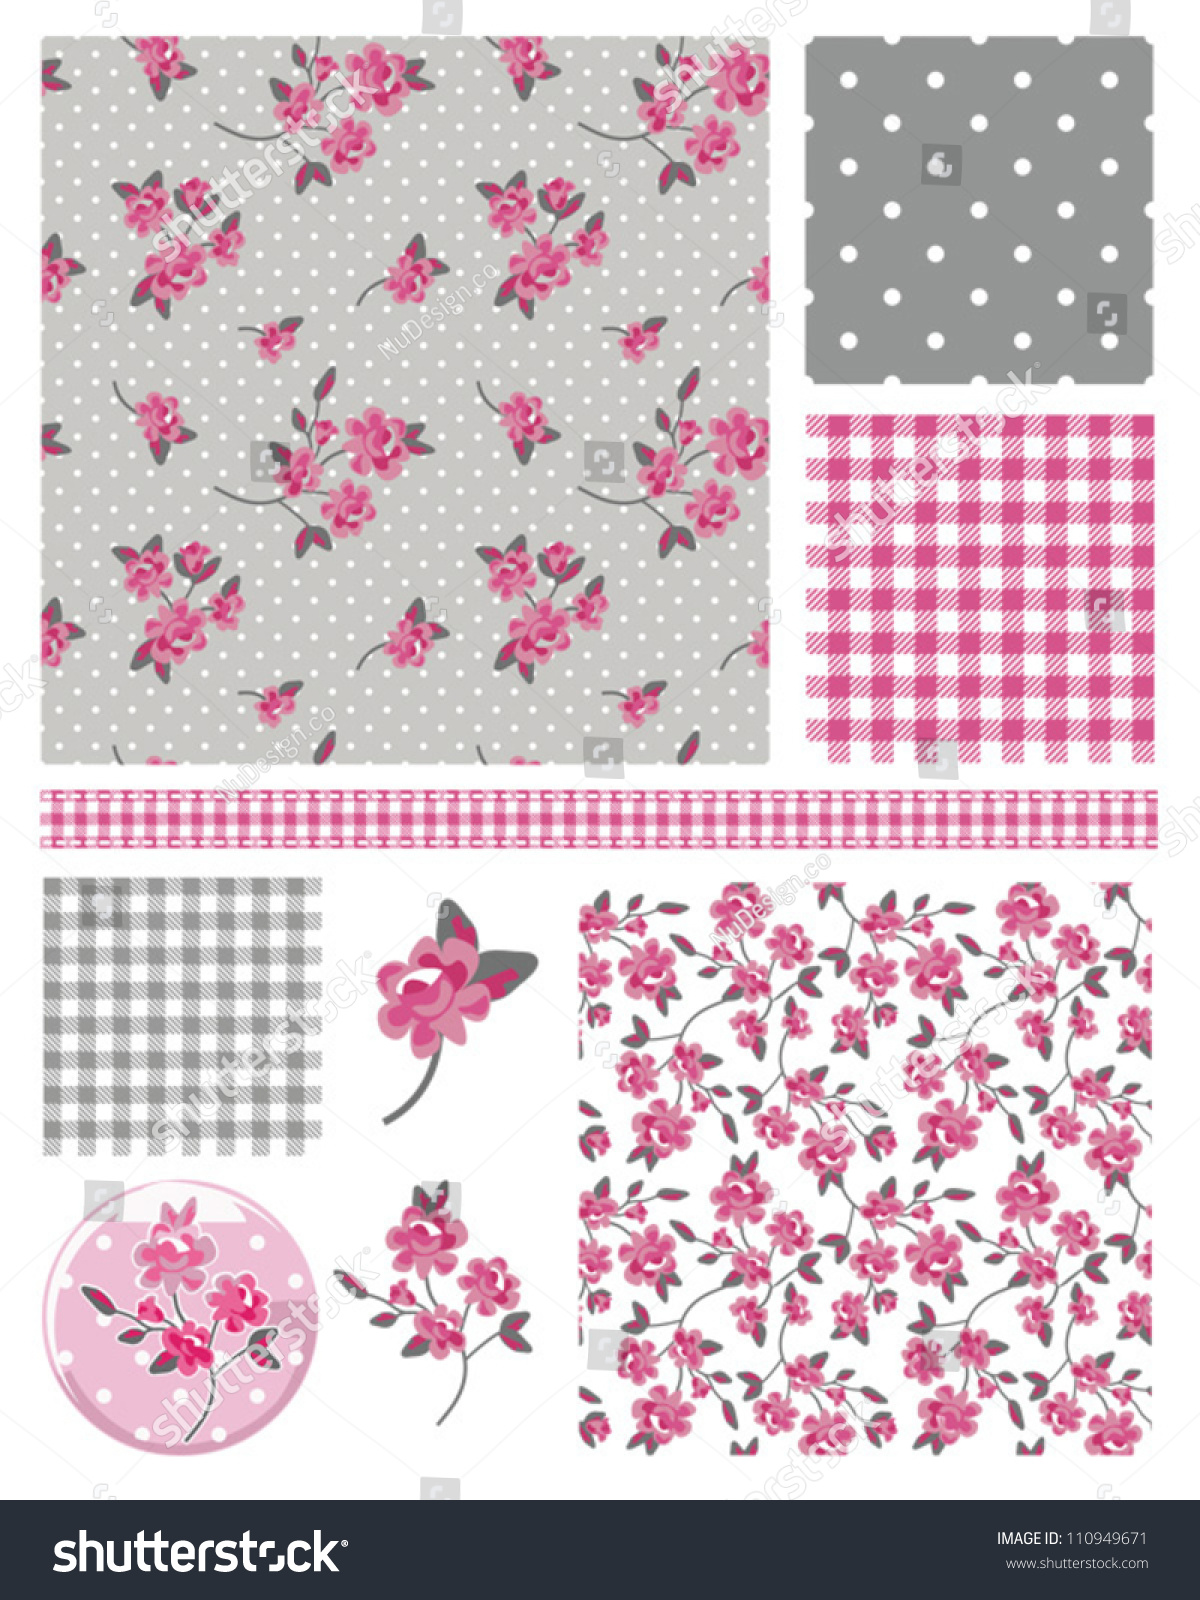 Pretty Shabby Chic Floral Vector Seamless Patterns And